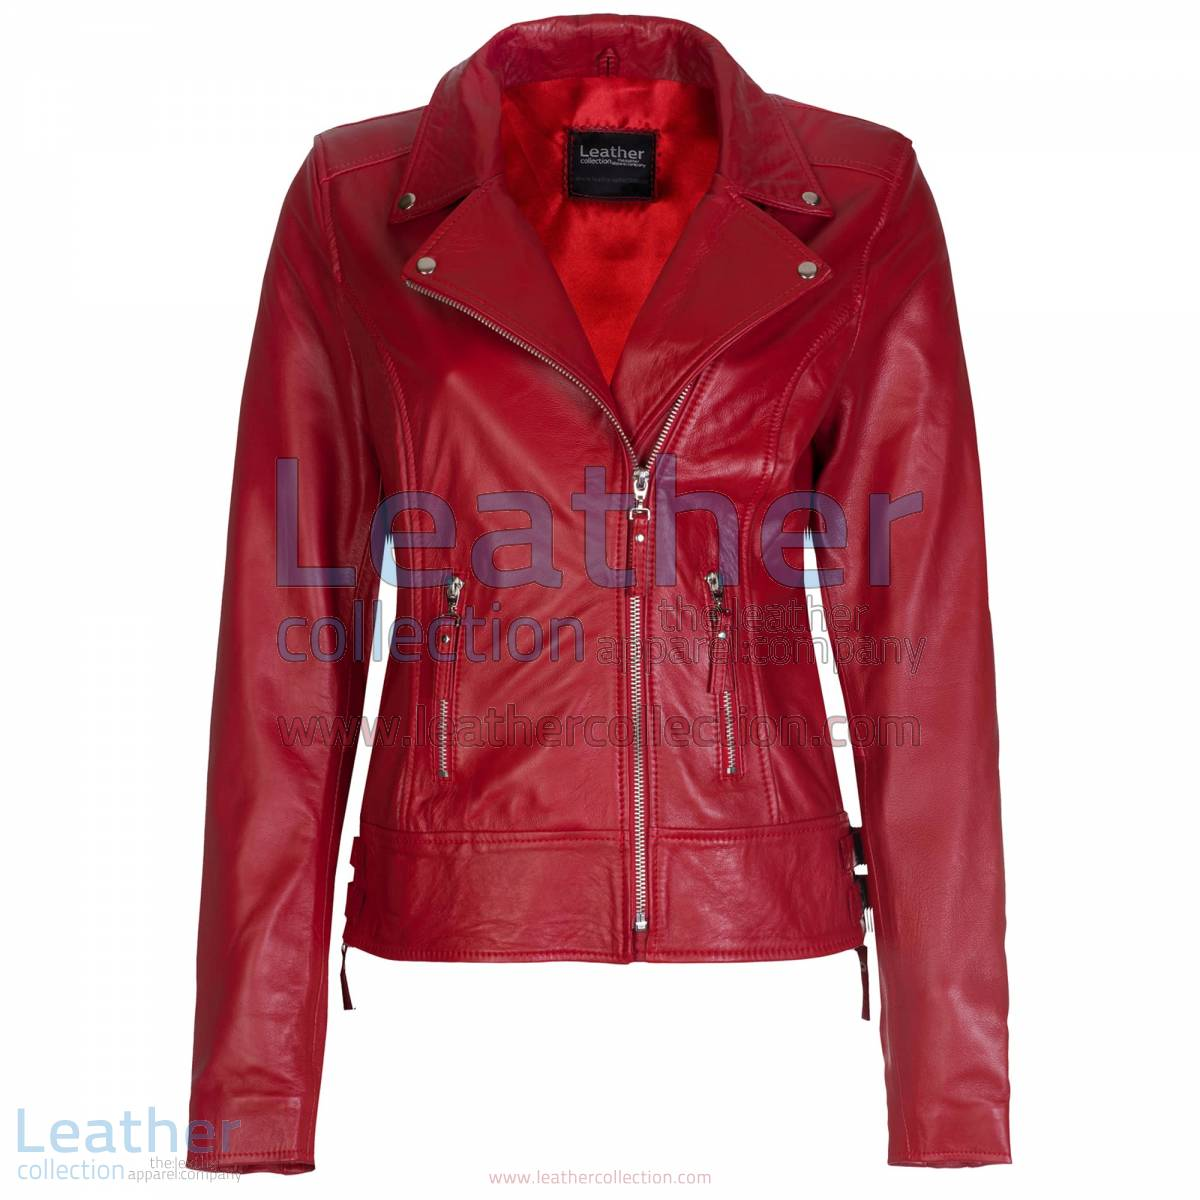 Red Vintage Biker Leather Jacket | vintage biker jacket